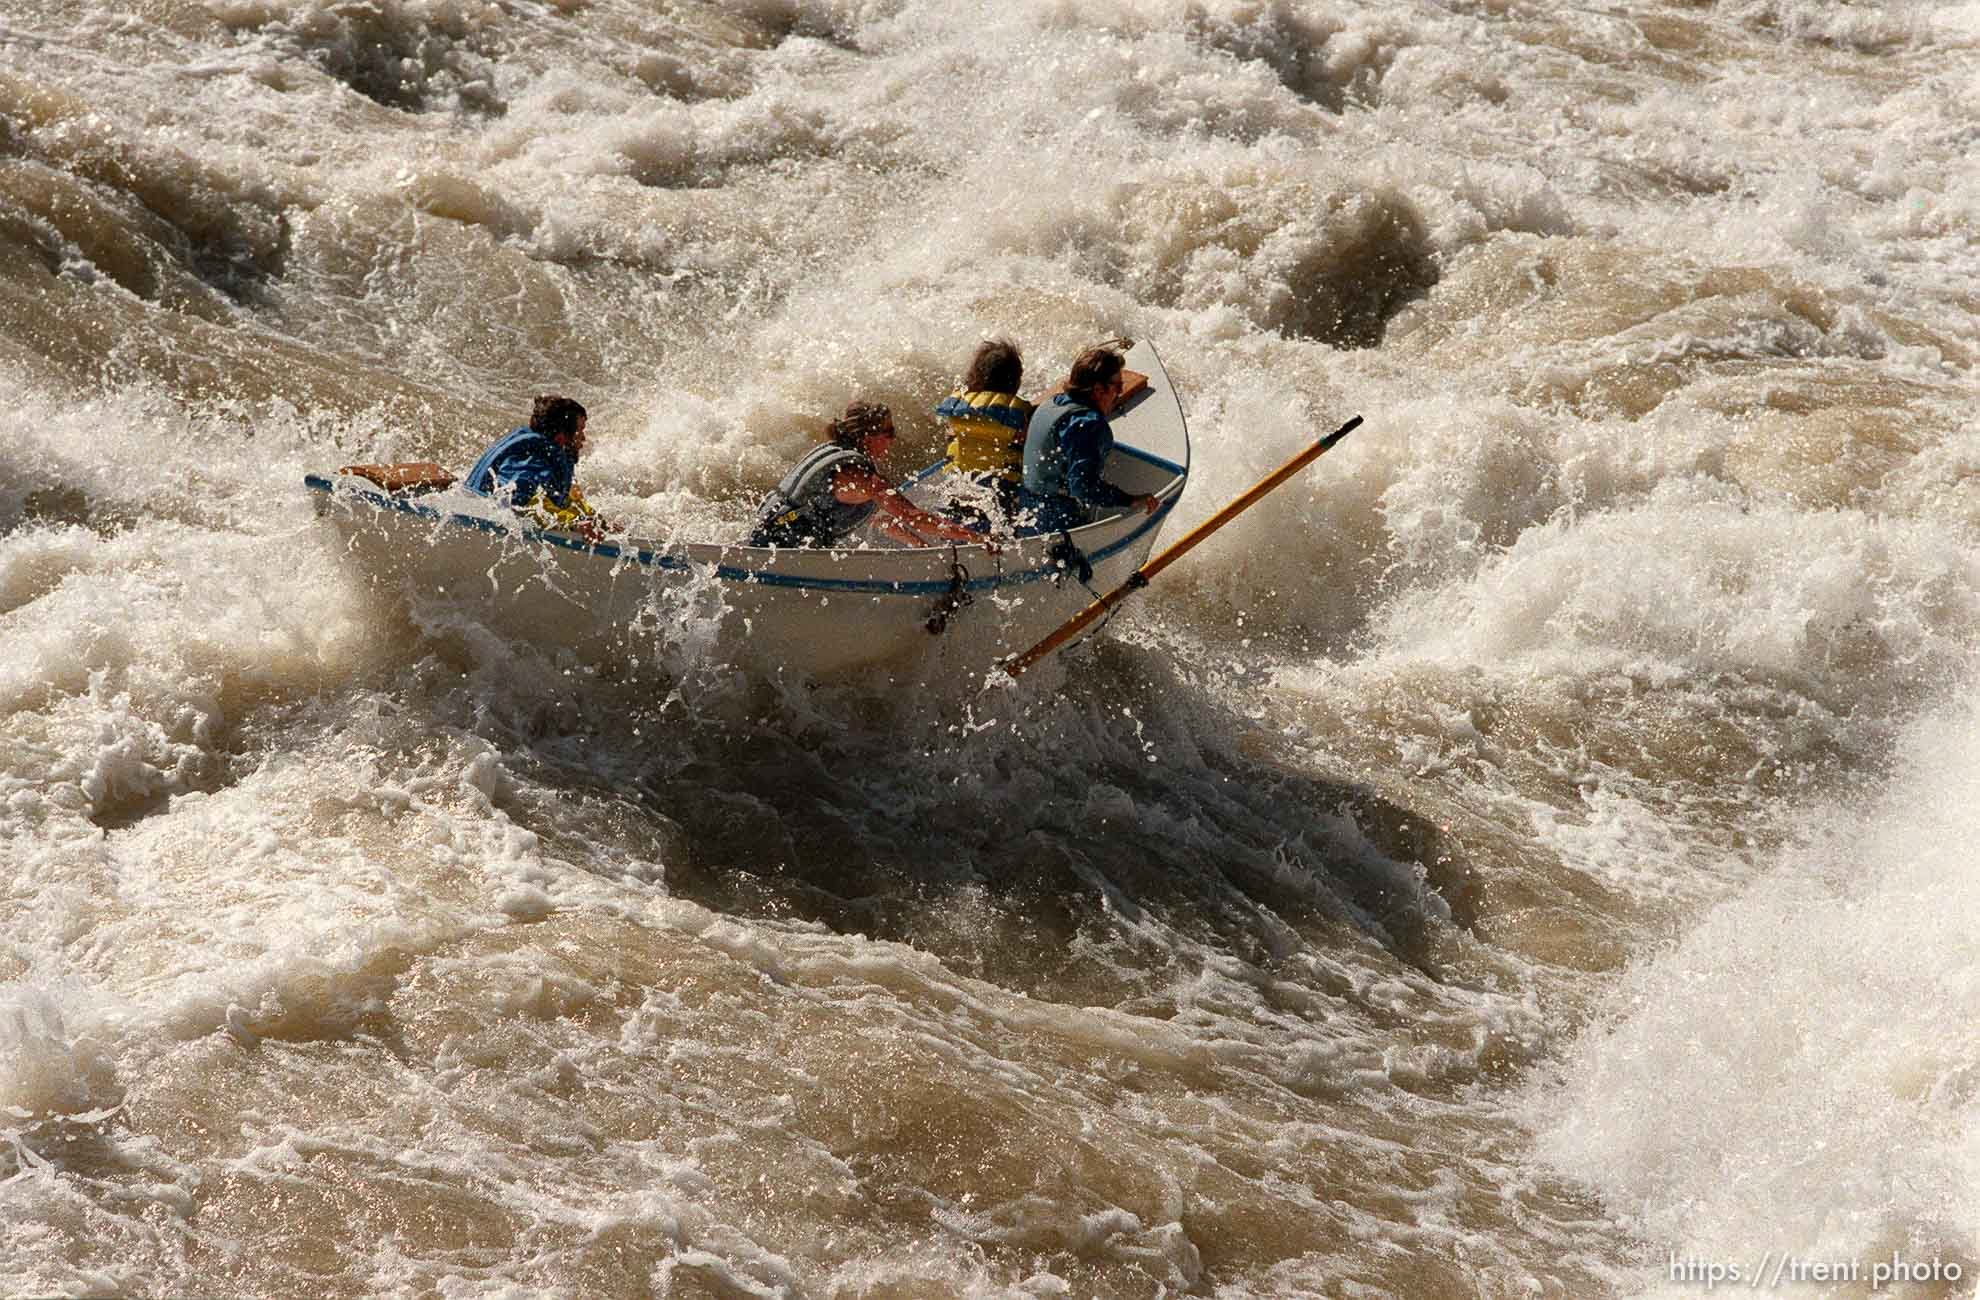 Dory pilot loses grip on oar in Lava Falls Rapid. Grand Canyon flood trip.